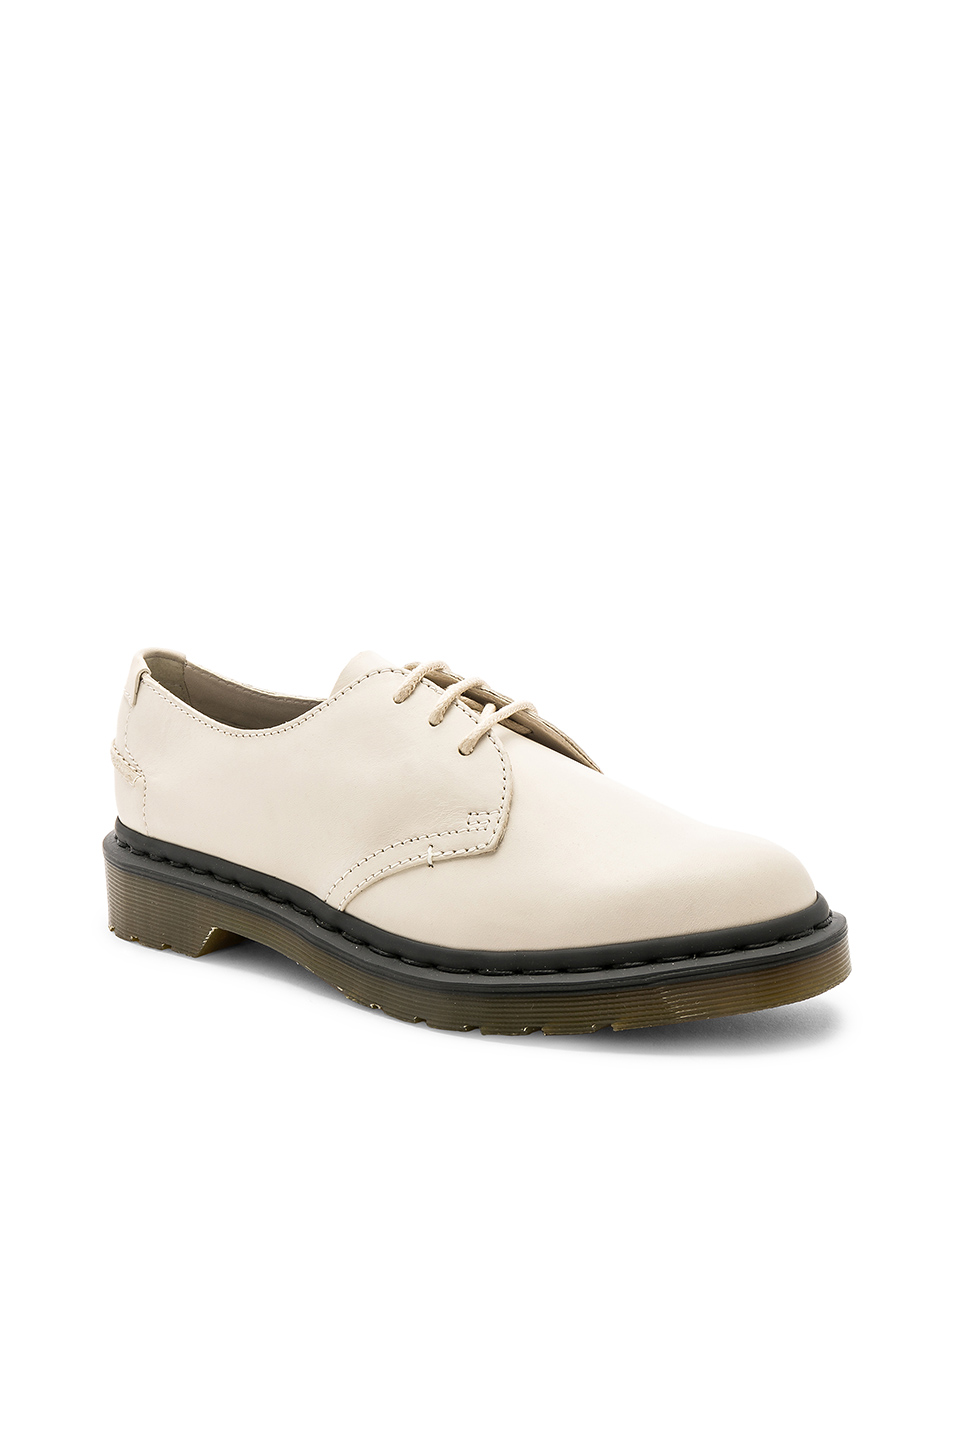 Dr. Martens Originals Core 1461 Decon in Bone